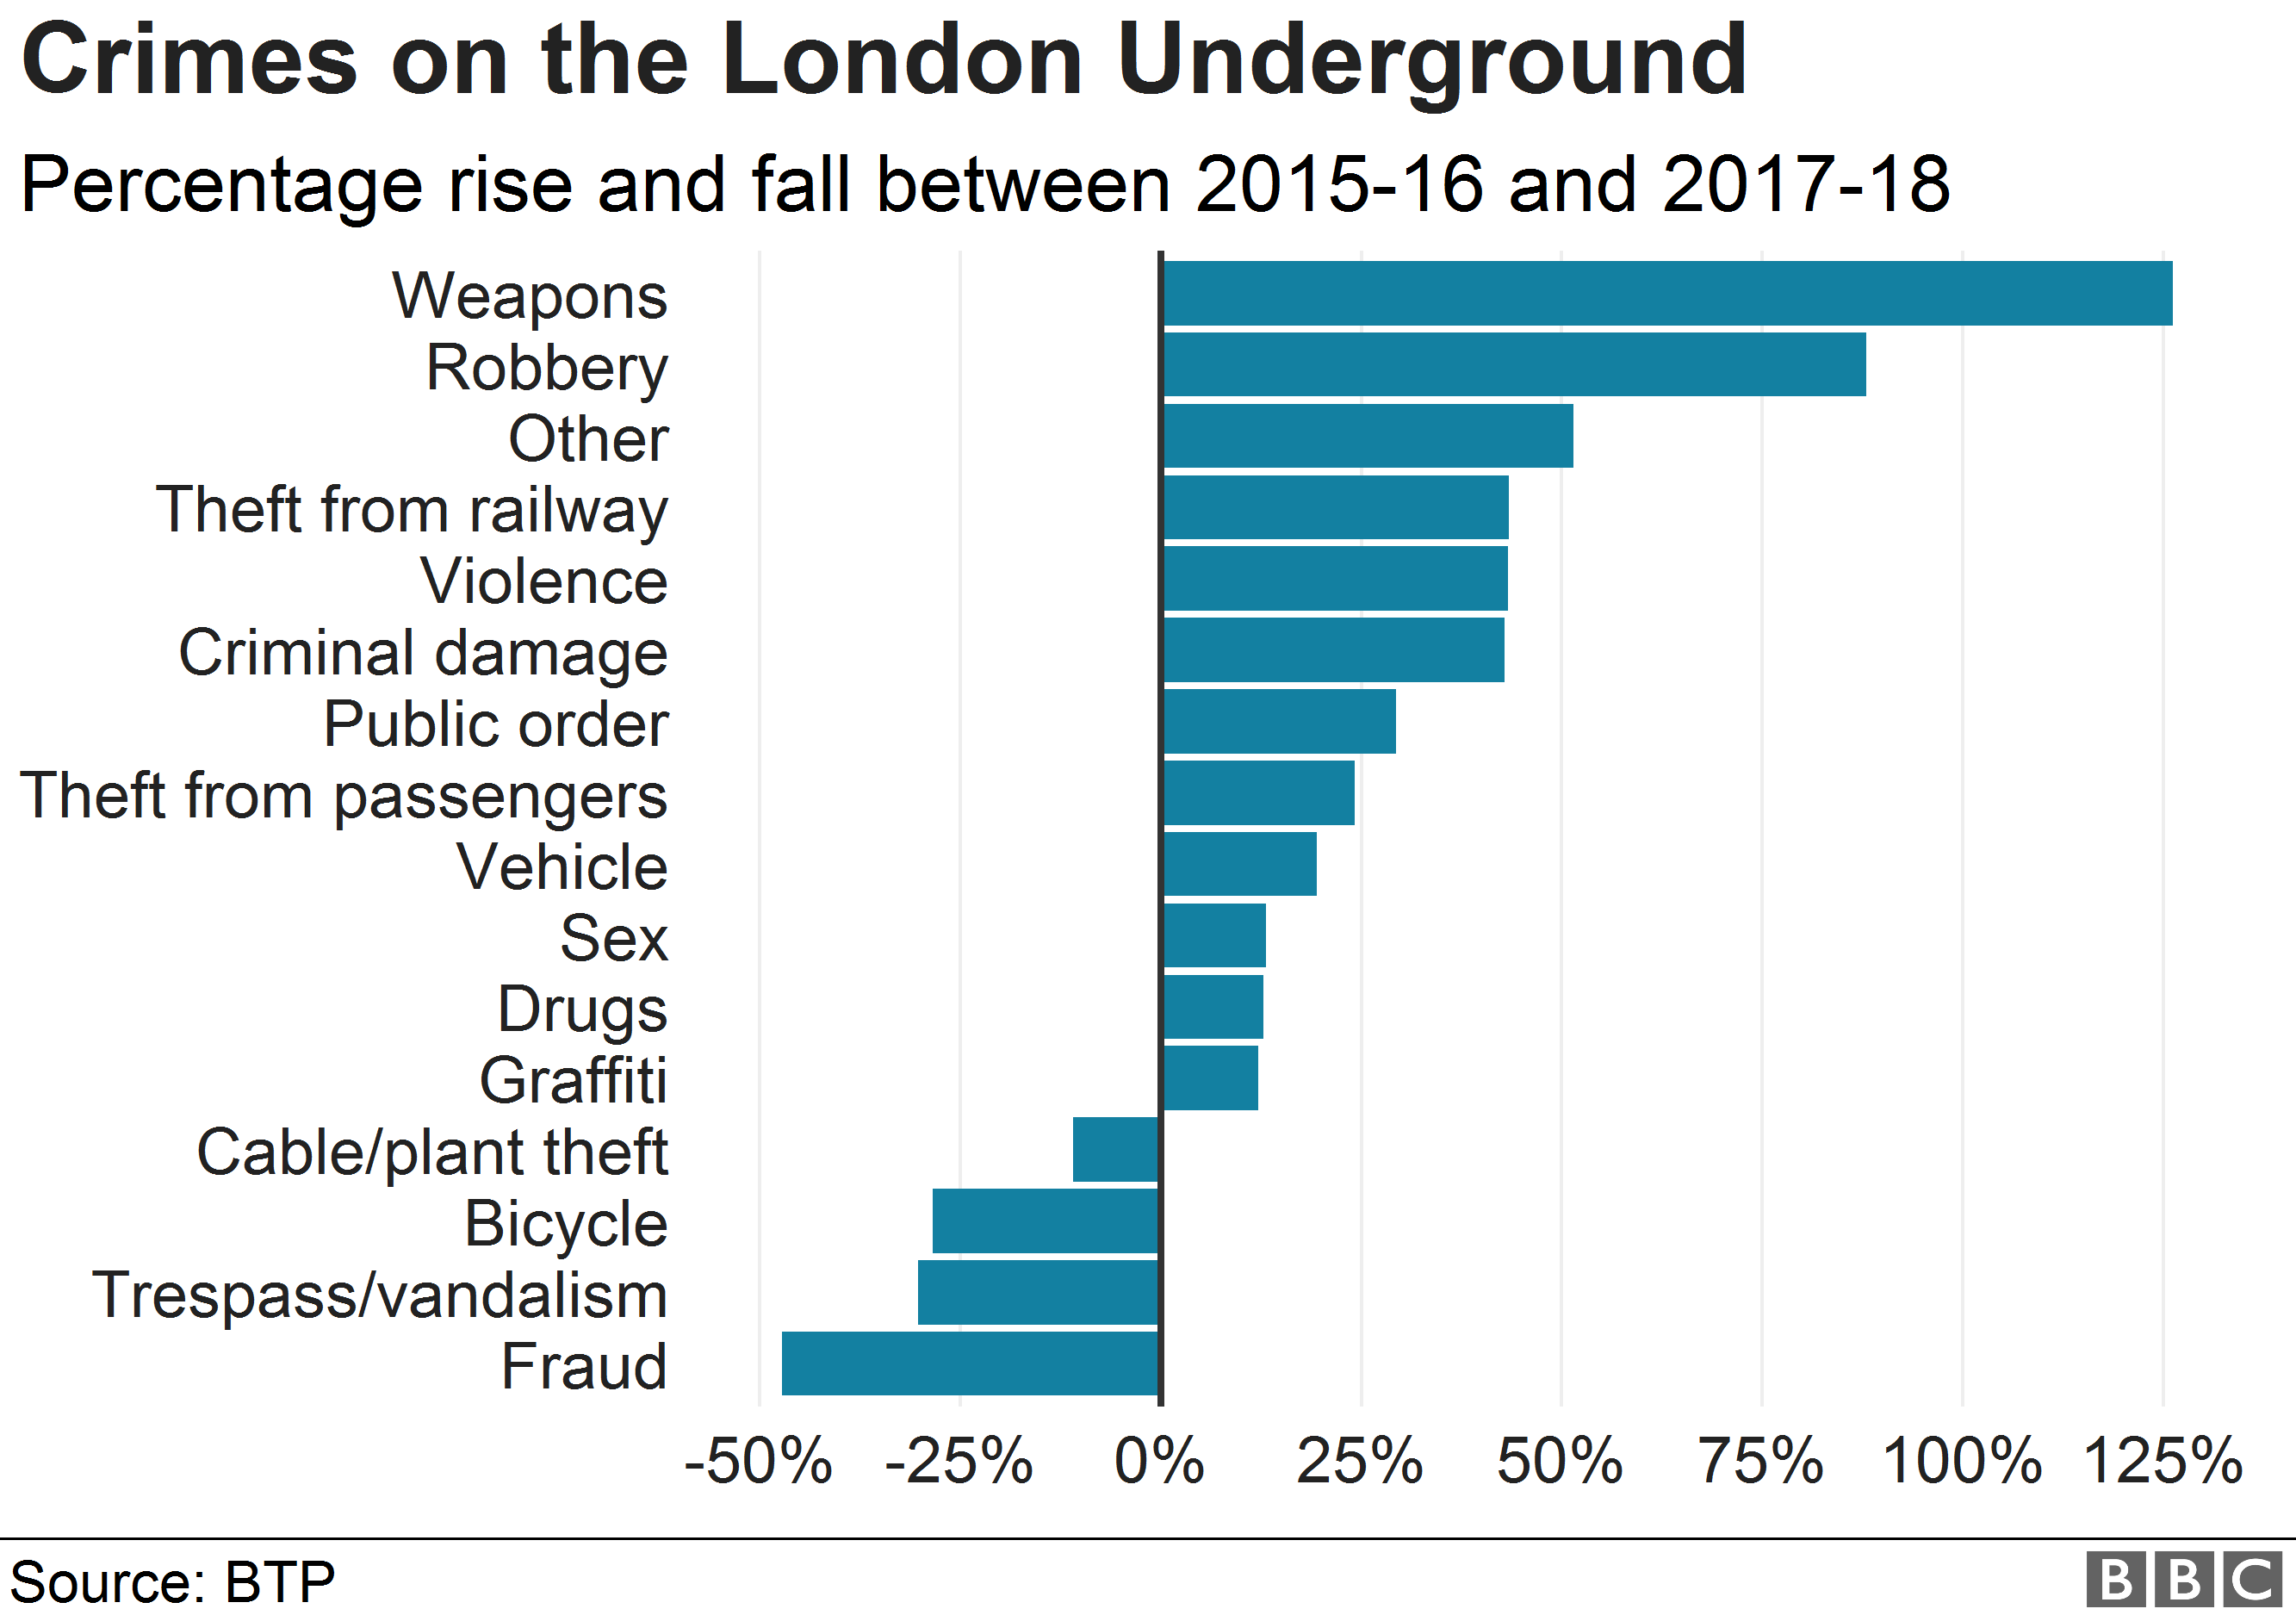 Chart showing offences on the London Underground